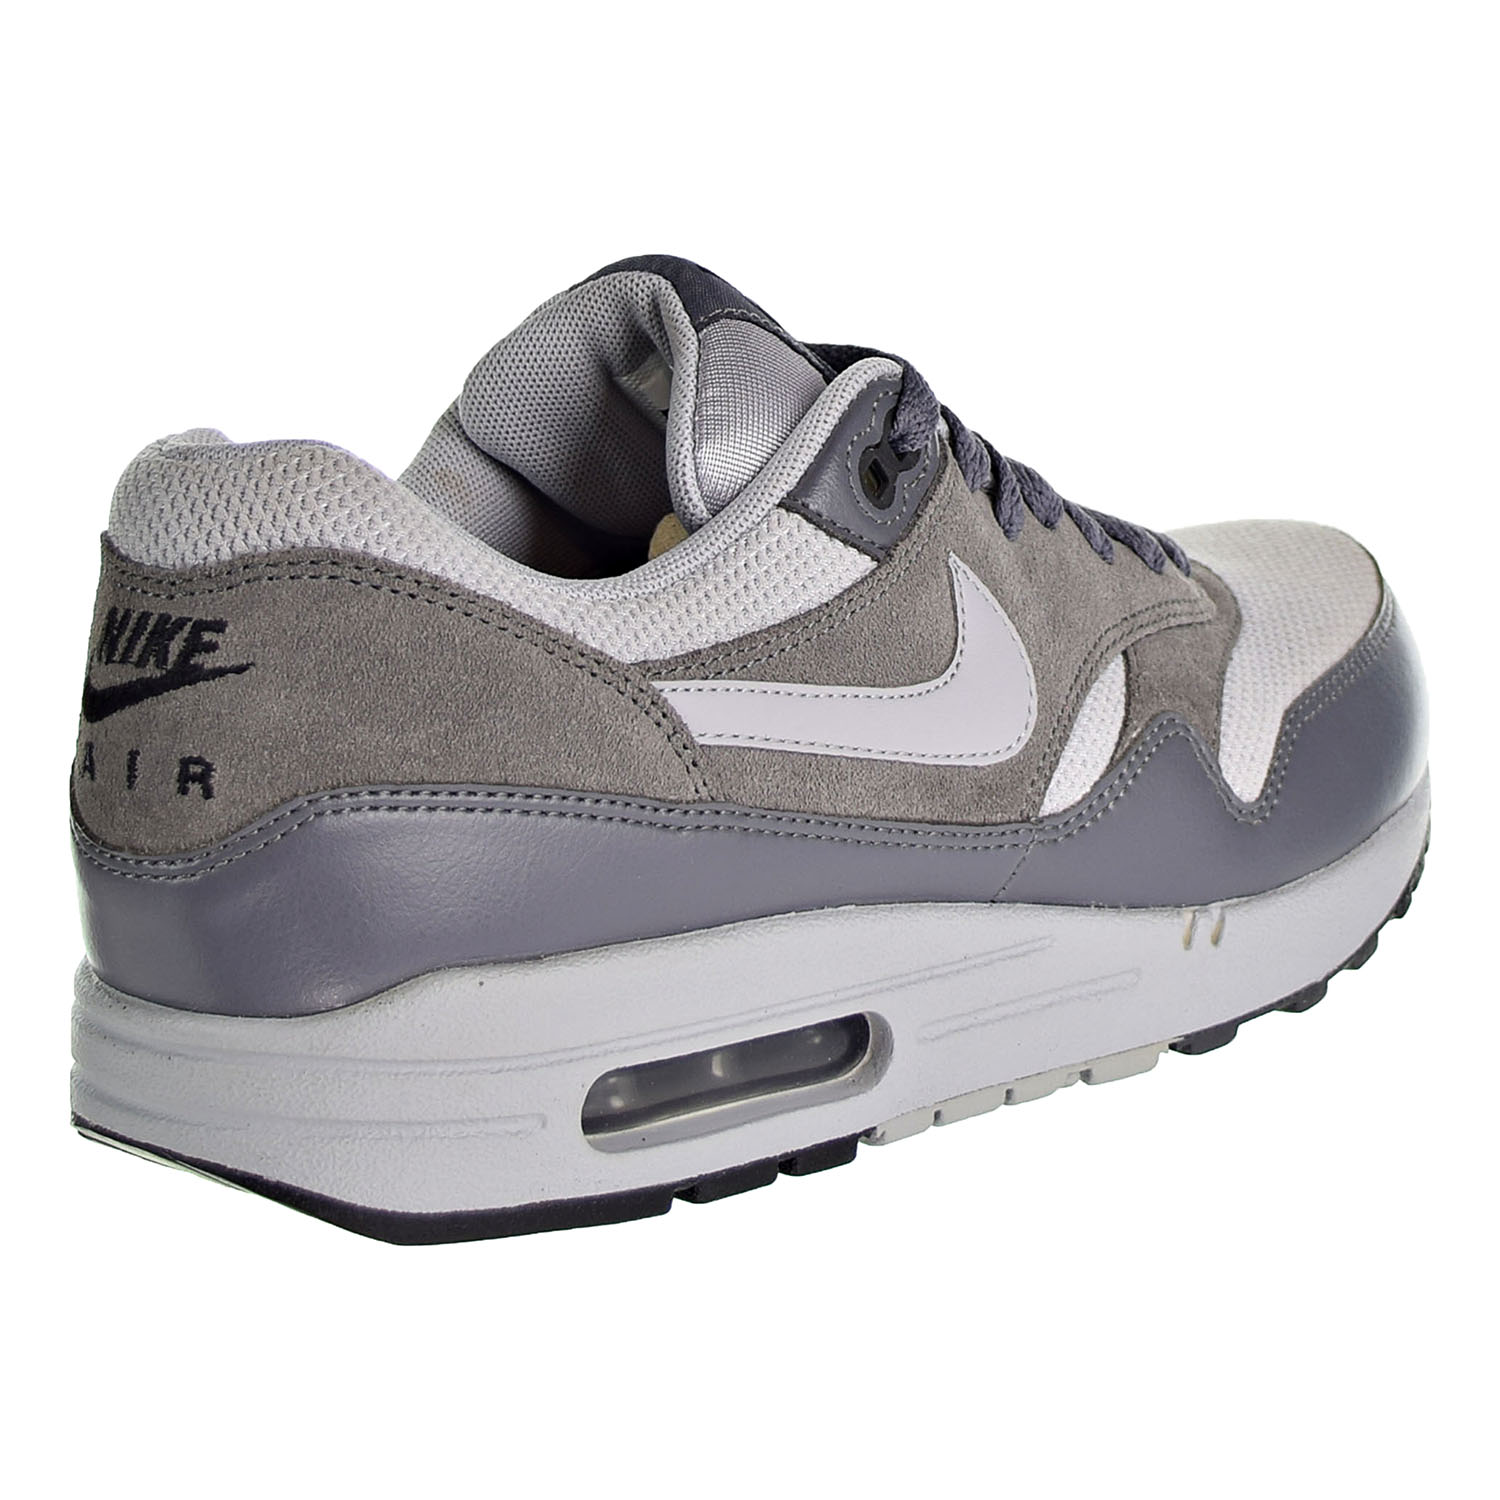 Details about Nike Air Max 1 Essential Men's Running Shoes Wolf Grey Dark Grey 537383 019